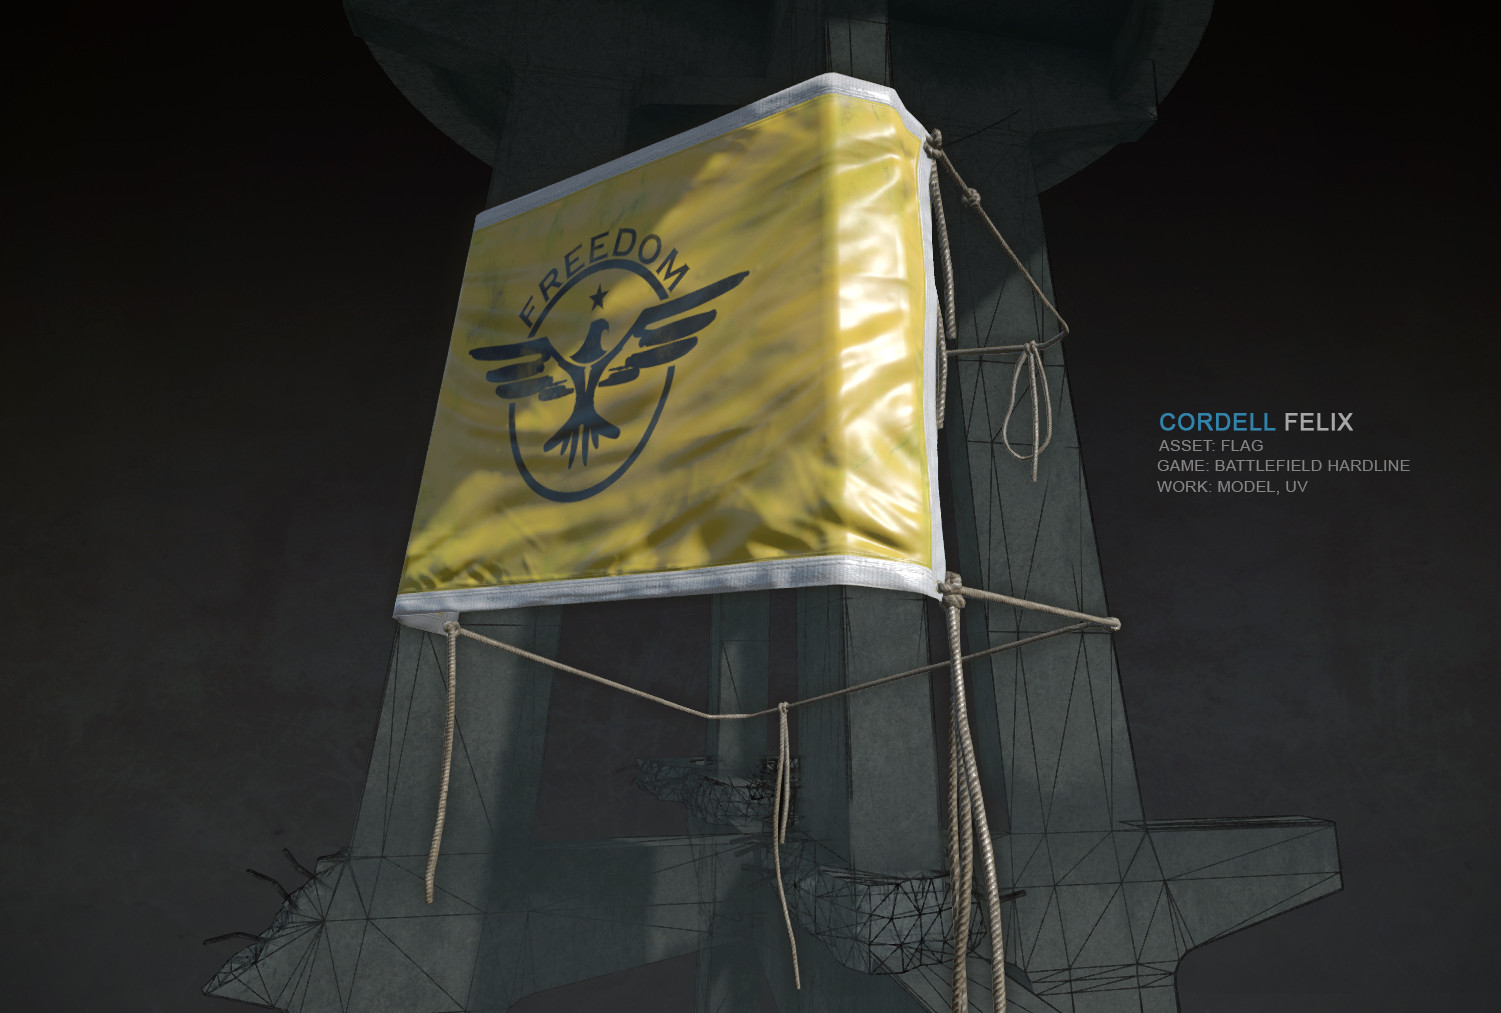 Cordell felix towerflag bfh